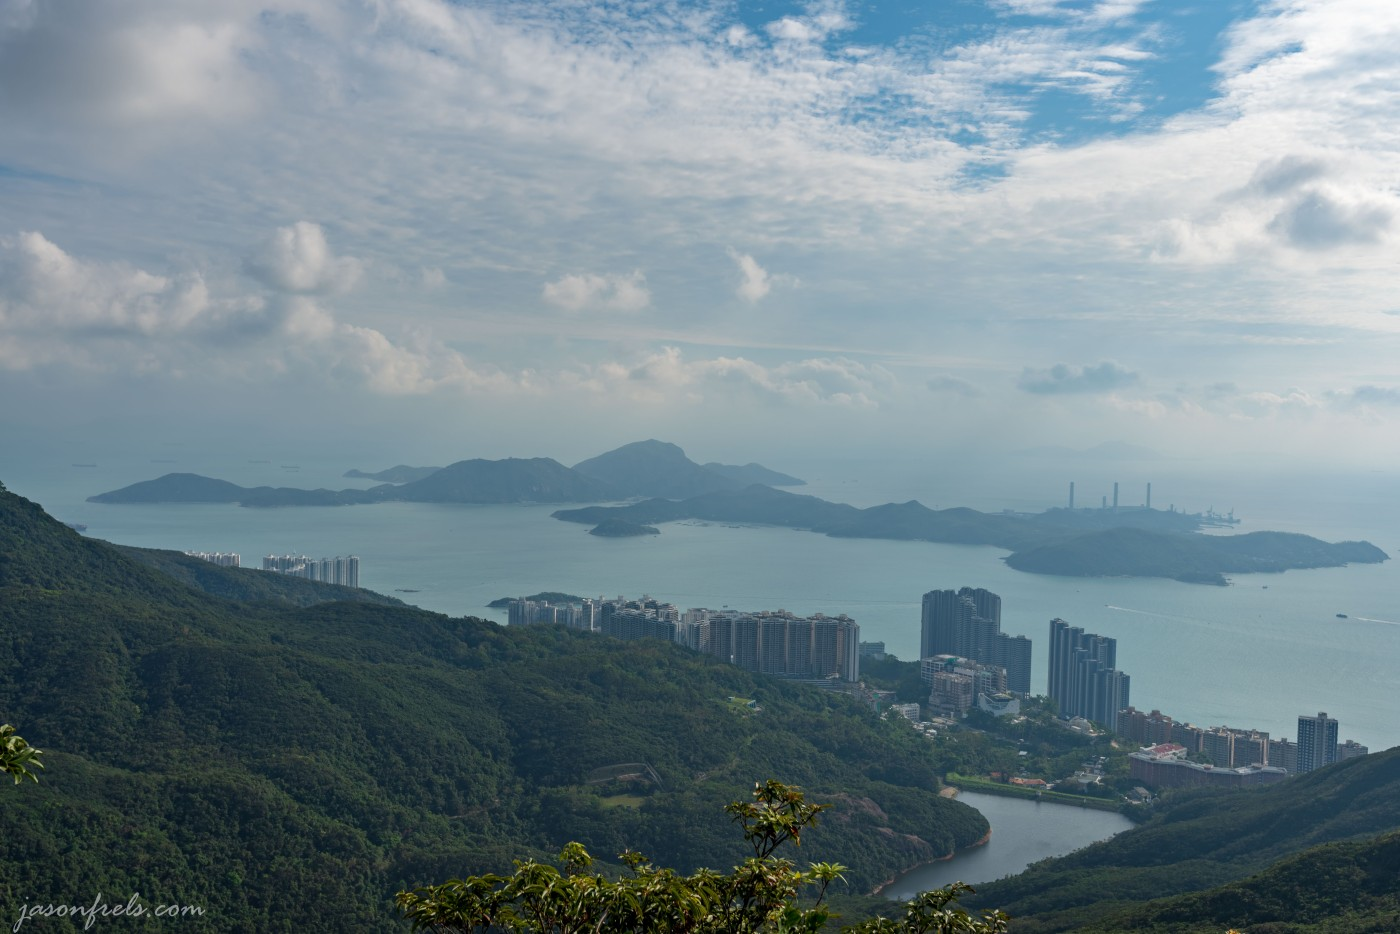 Lamma Island as seen from Victoria Peak on Hong Kong Island